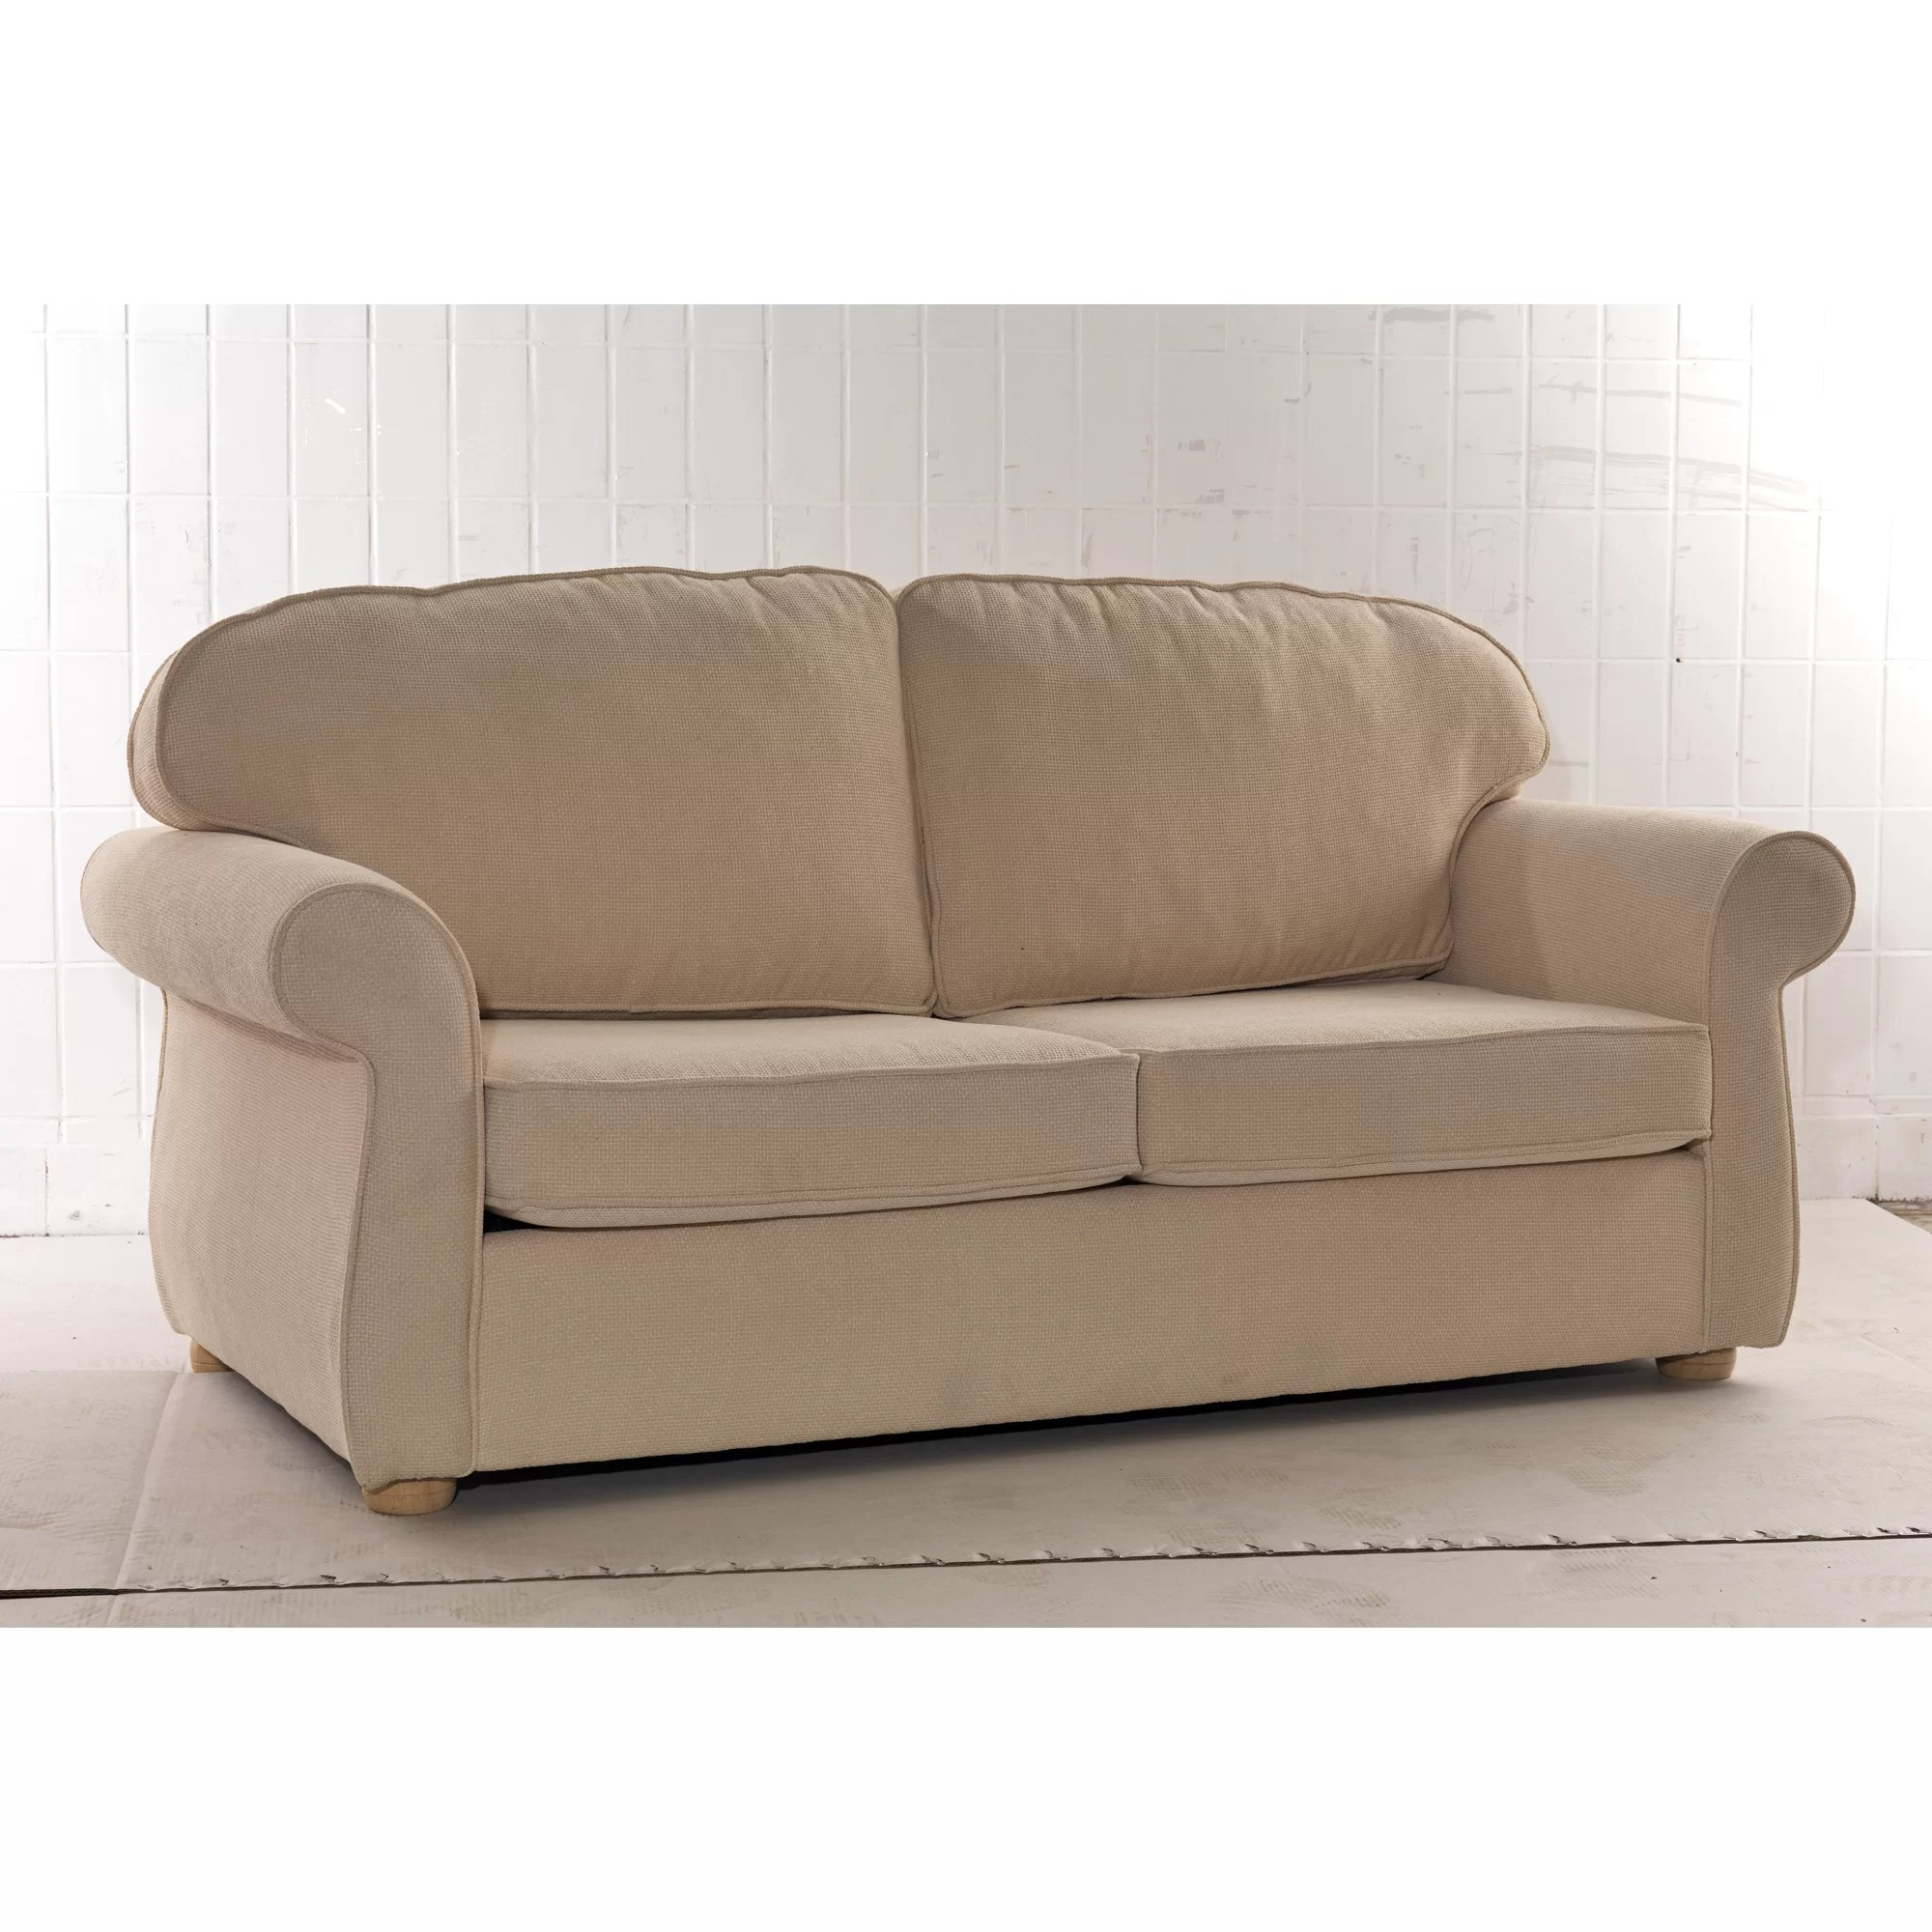 fold out sofa bed uk very comfy sofas icon design peru 2 seater wayfair